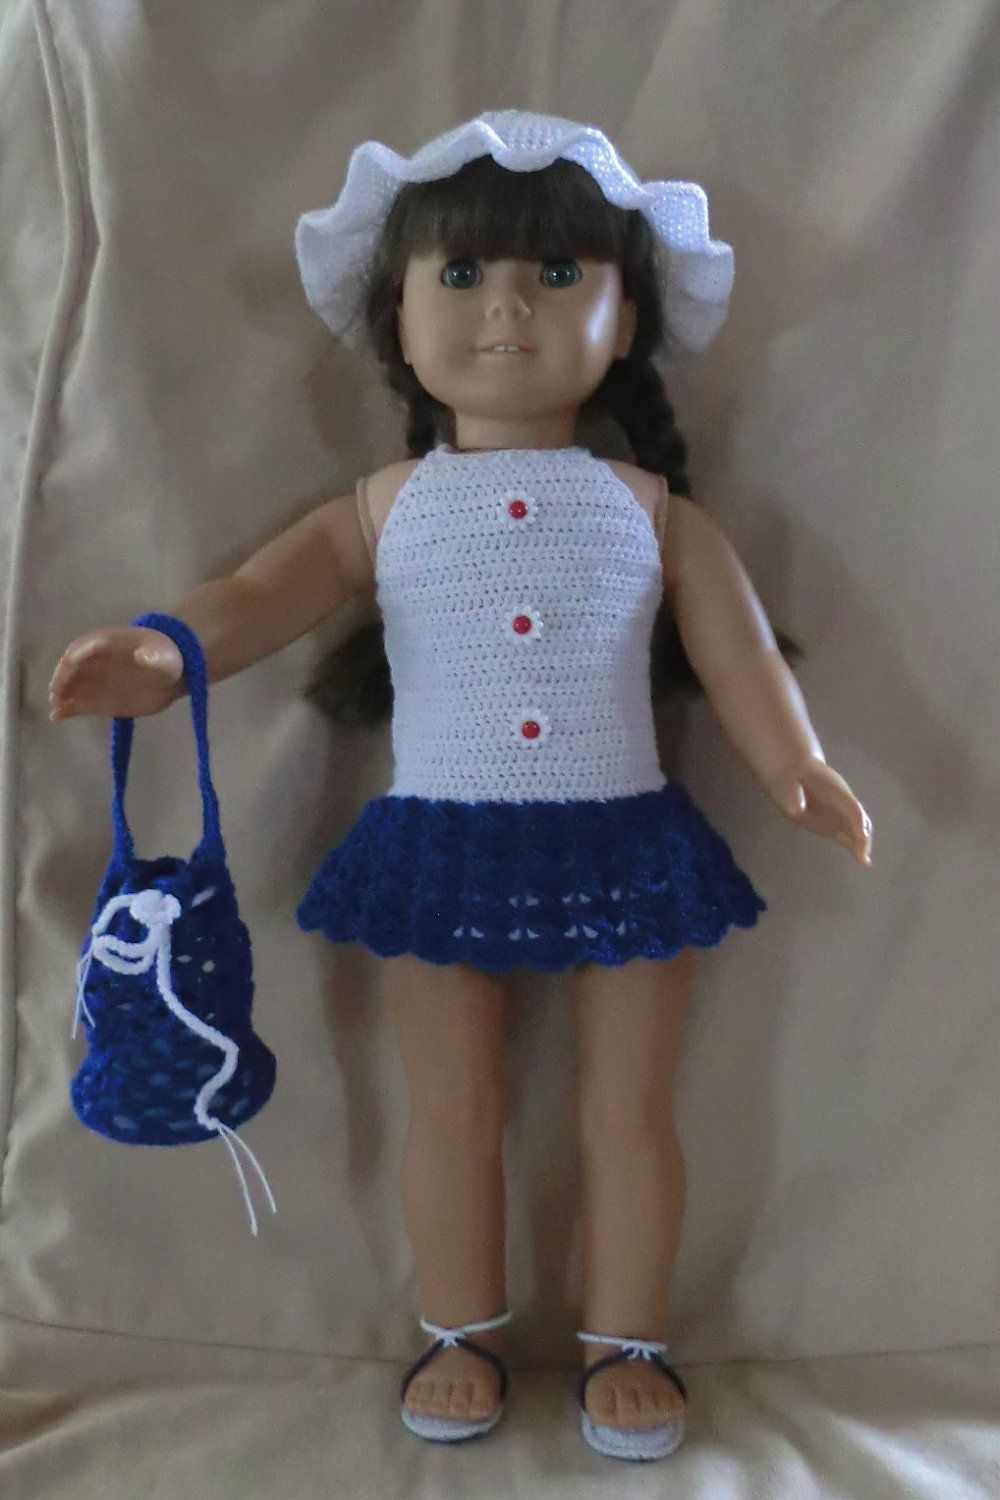 Crochet Pattern 152 Day at the Beach Set for 18 Inch Dolls. $3.00, via Etsy.